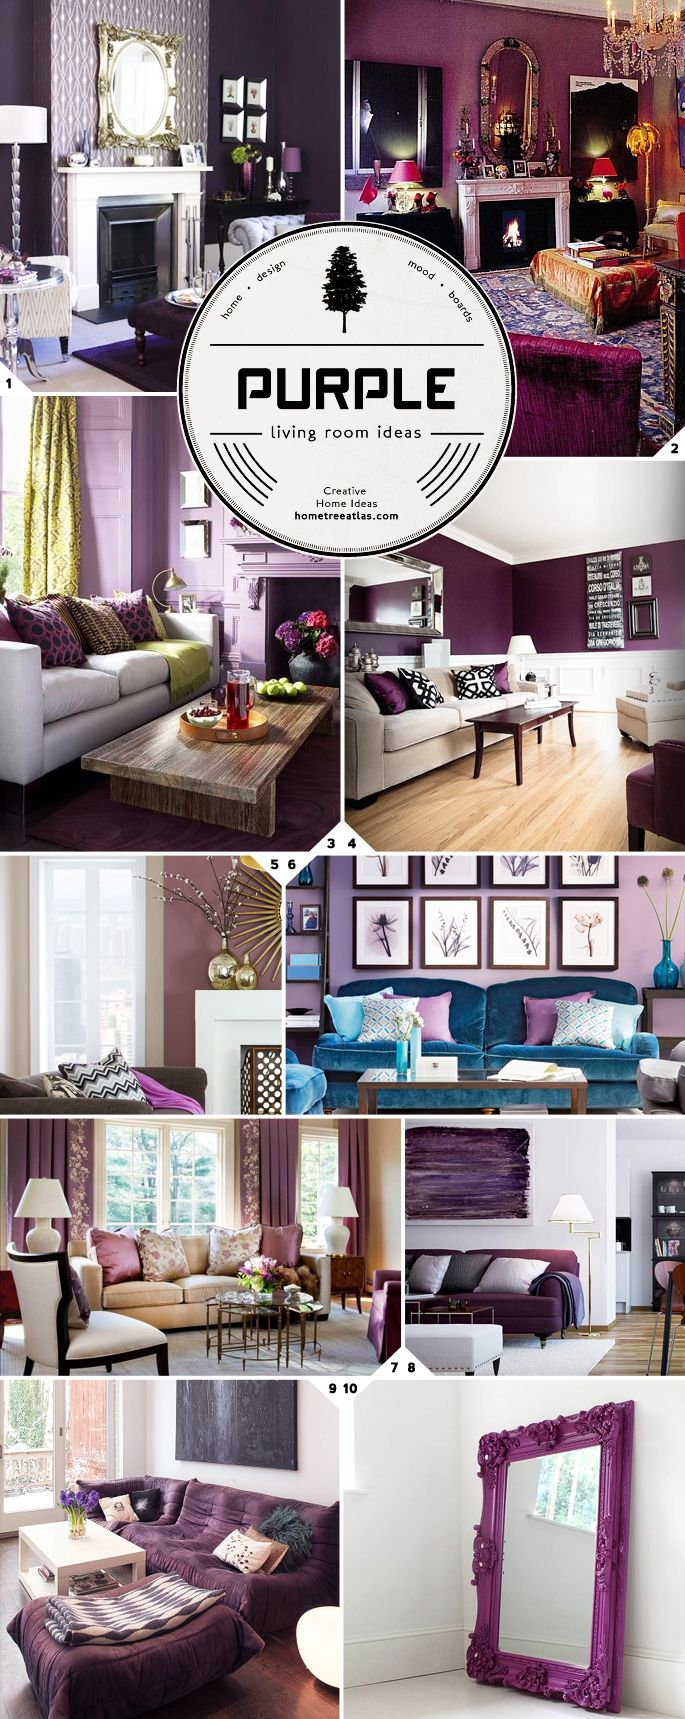 Purple living room design ideas..